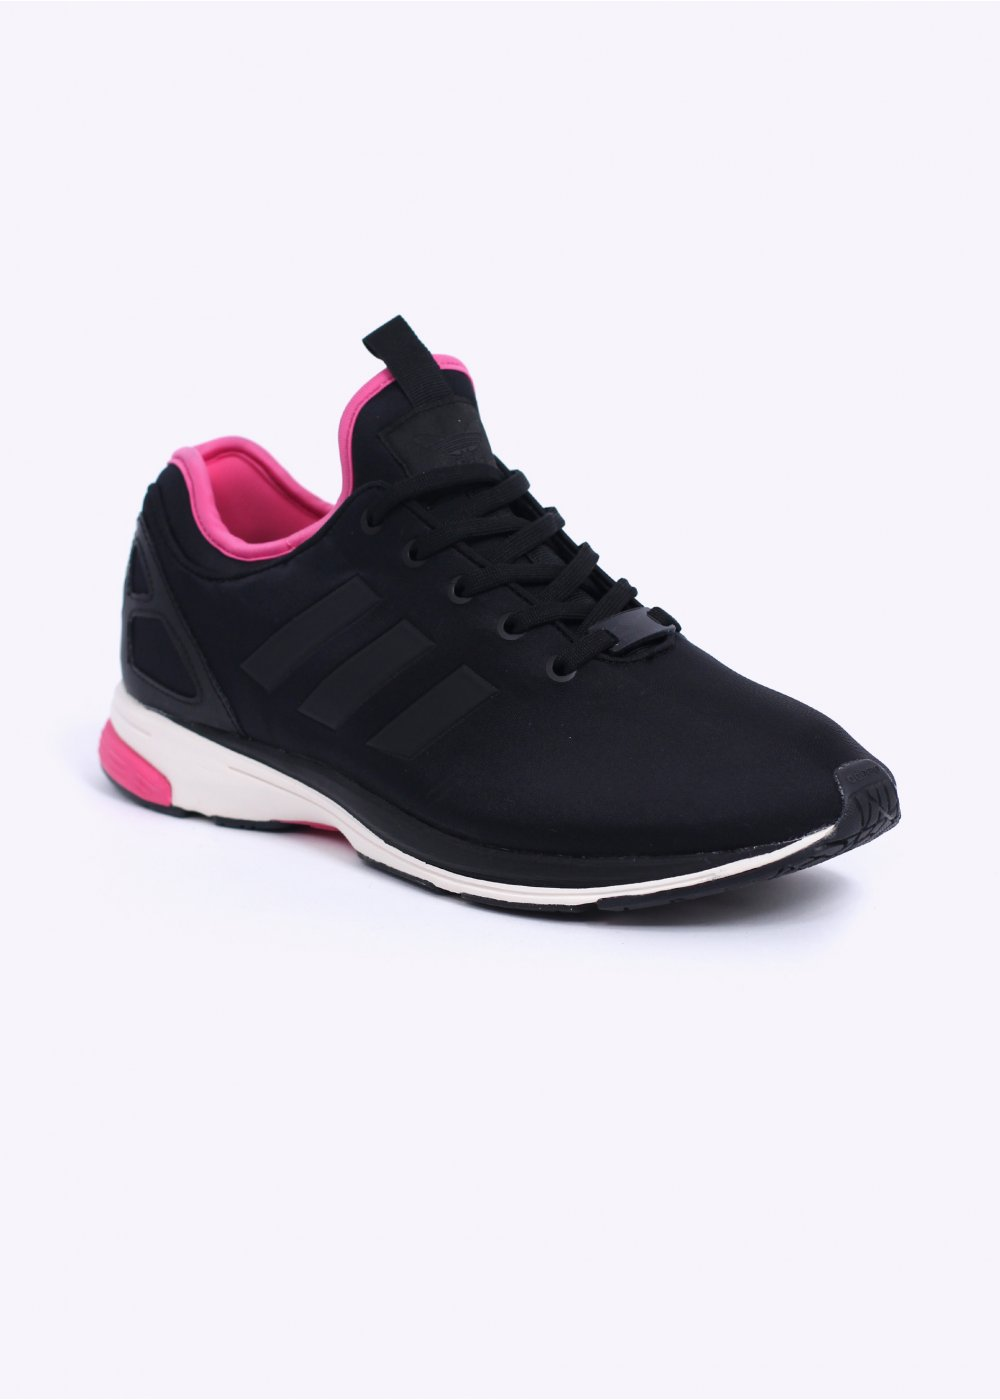 huge selection of 19f2e e1728 australia adidas zx flux black pink white afc72 e6368